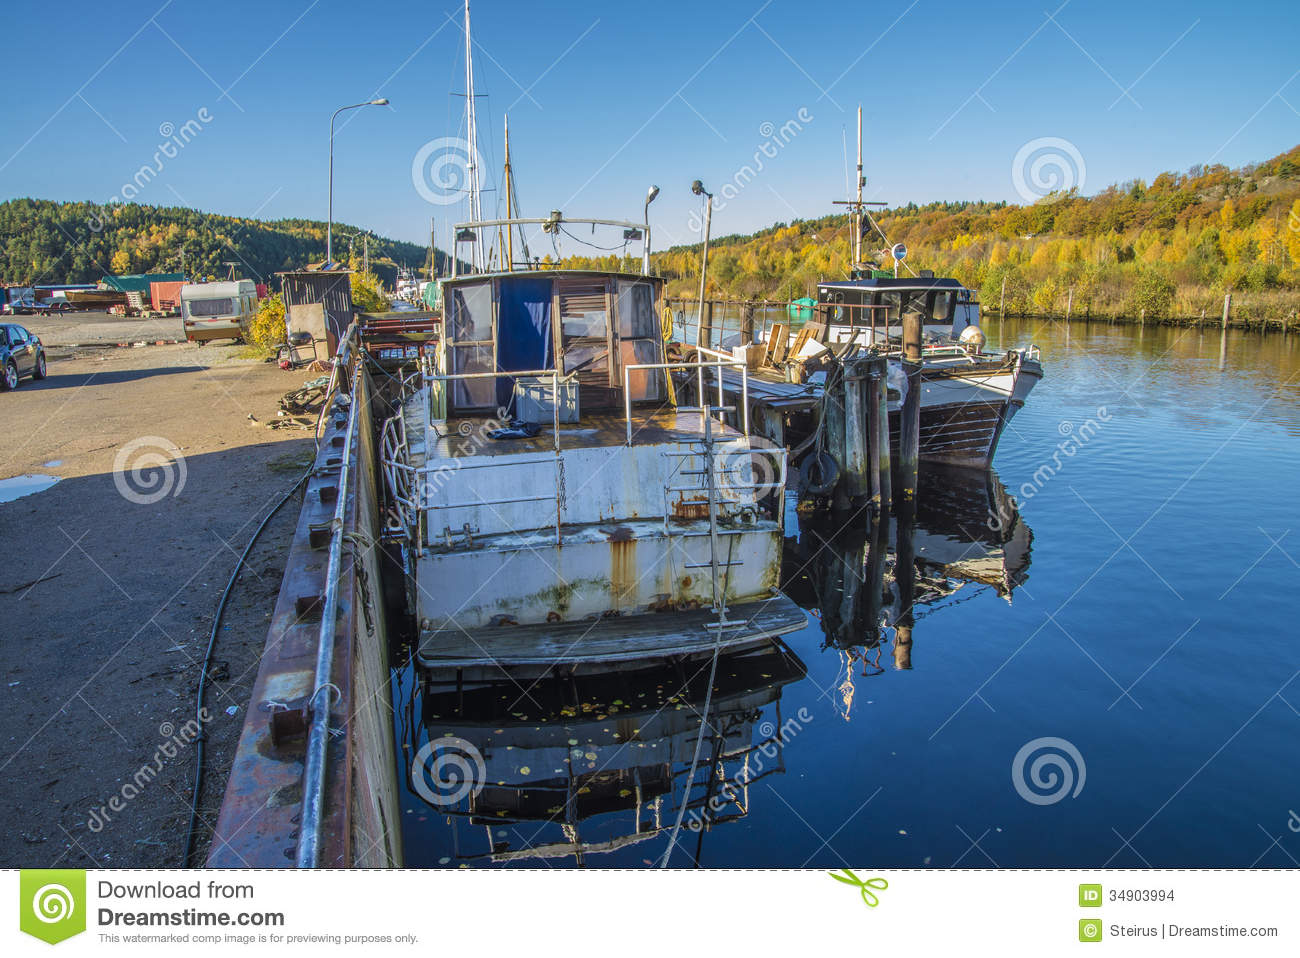 Big Old Rusty Steel Boat Stock Images - Image: 34903994